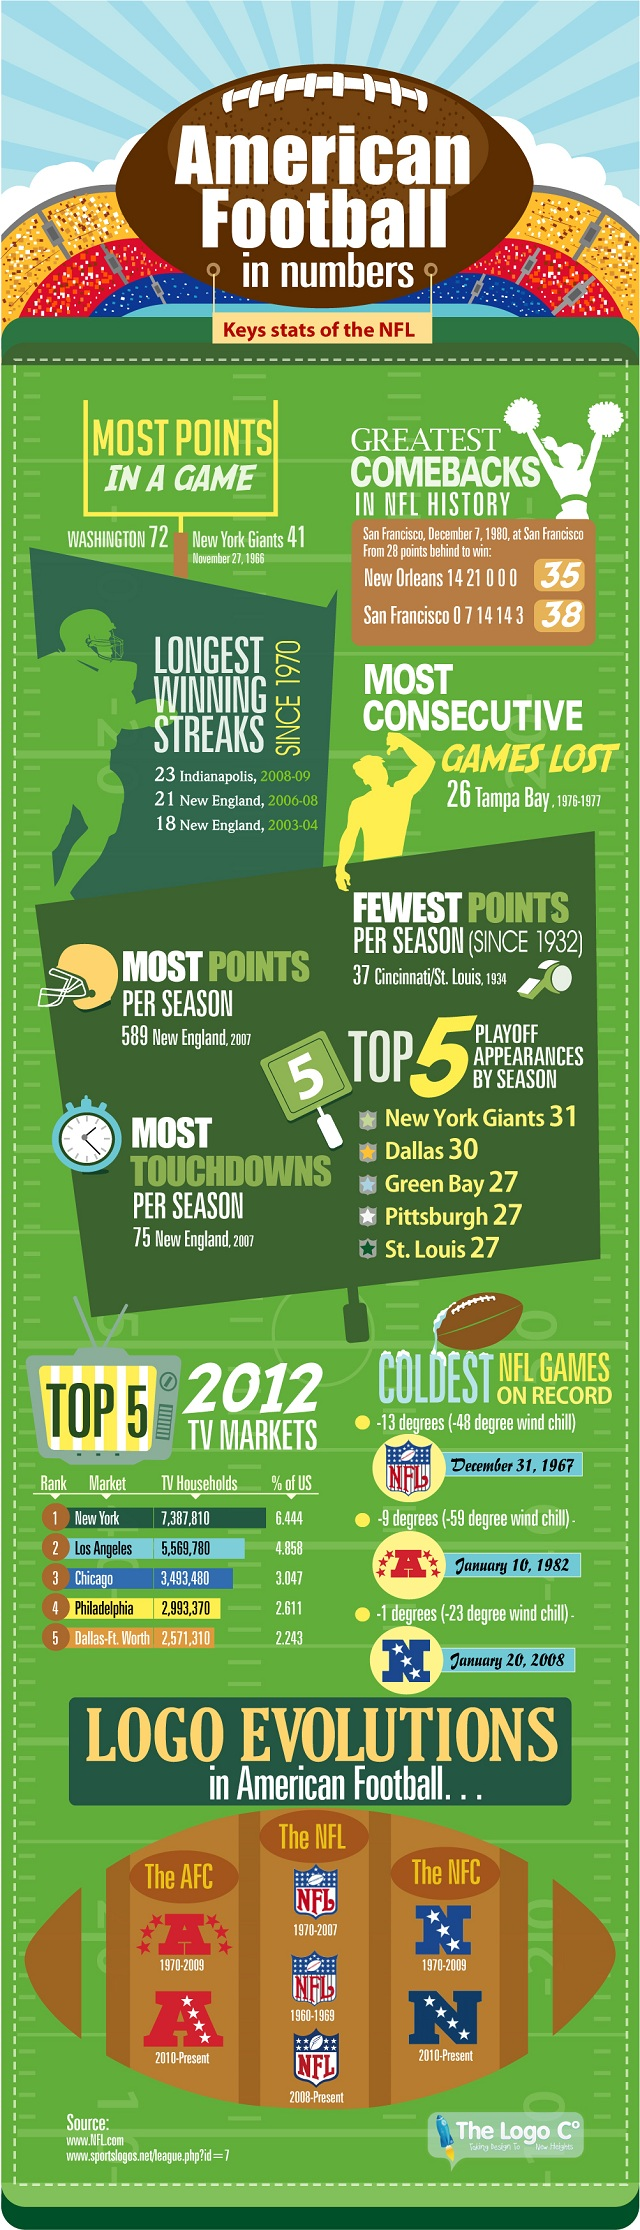 american-football-in-numbers_5060762e54b03